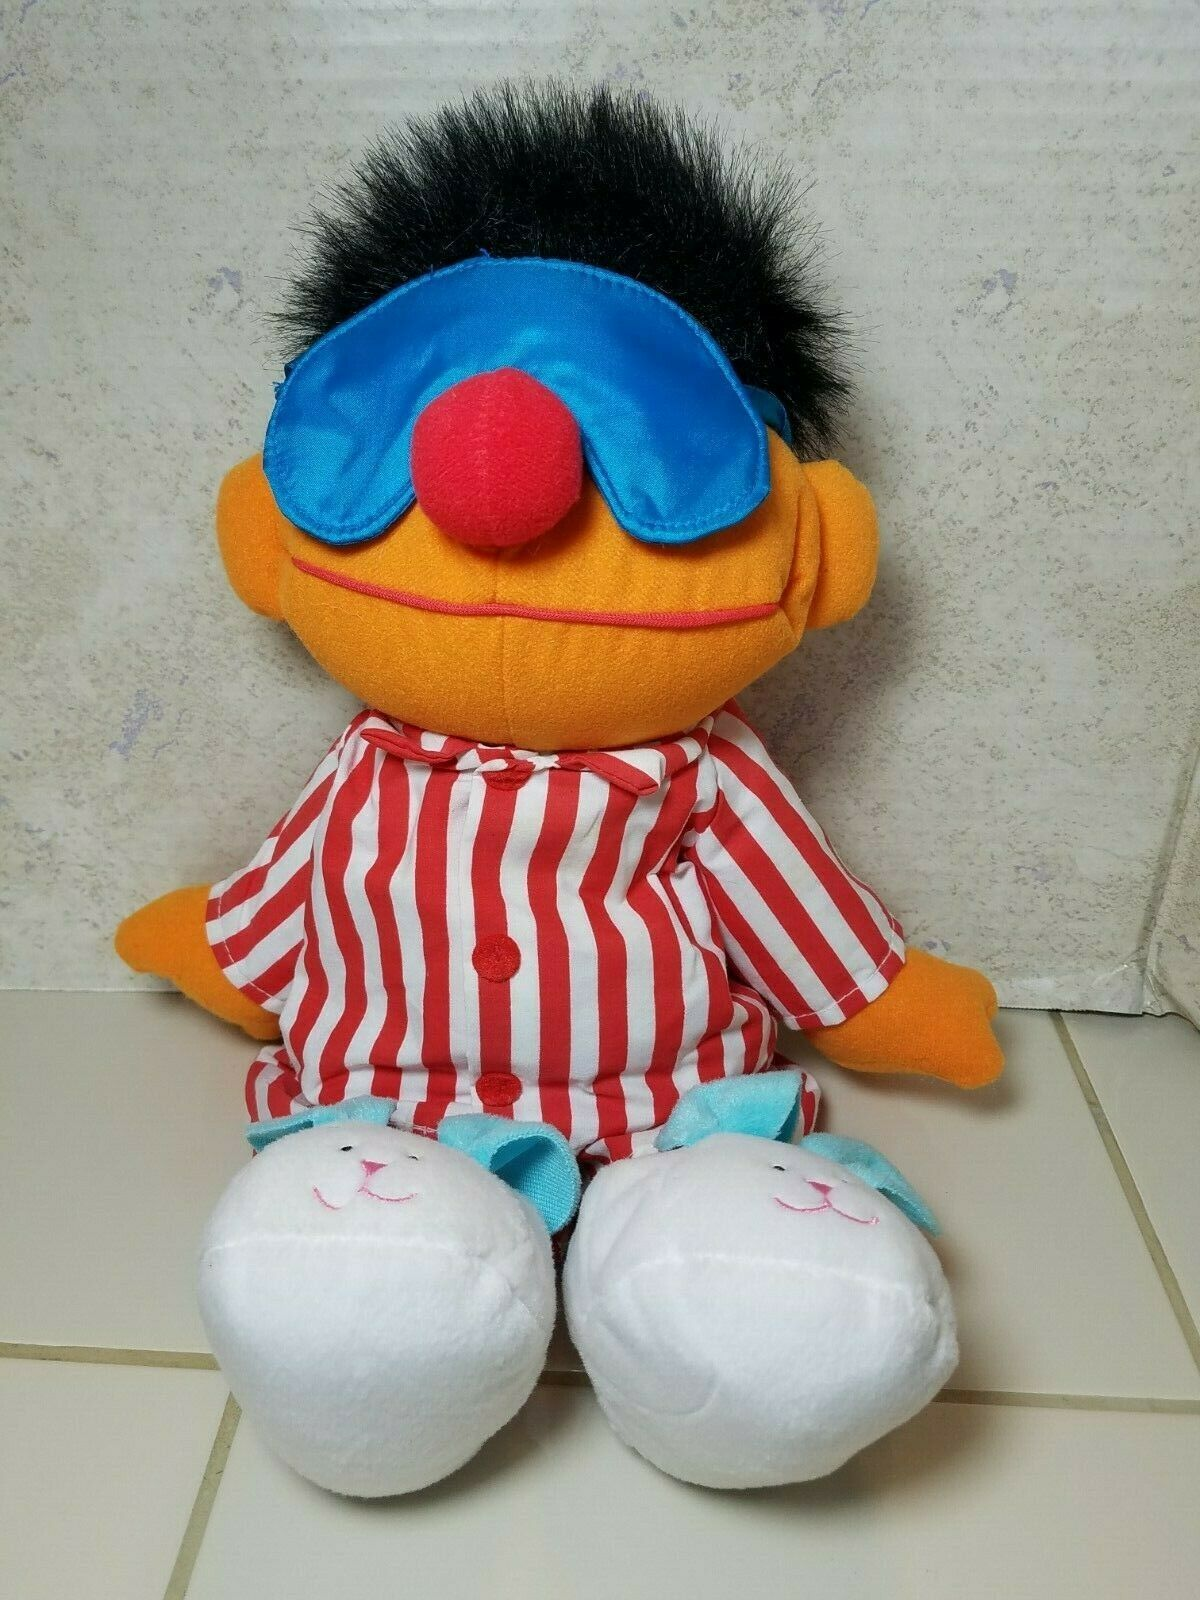 "TYCO Sesame Street Sleep And Snore Ernie 1996 Plush Doll 18"" Jim Henson Muppet image 2"